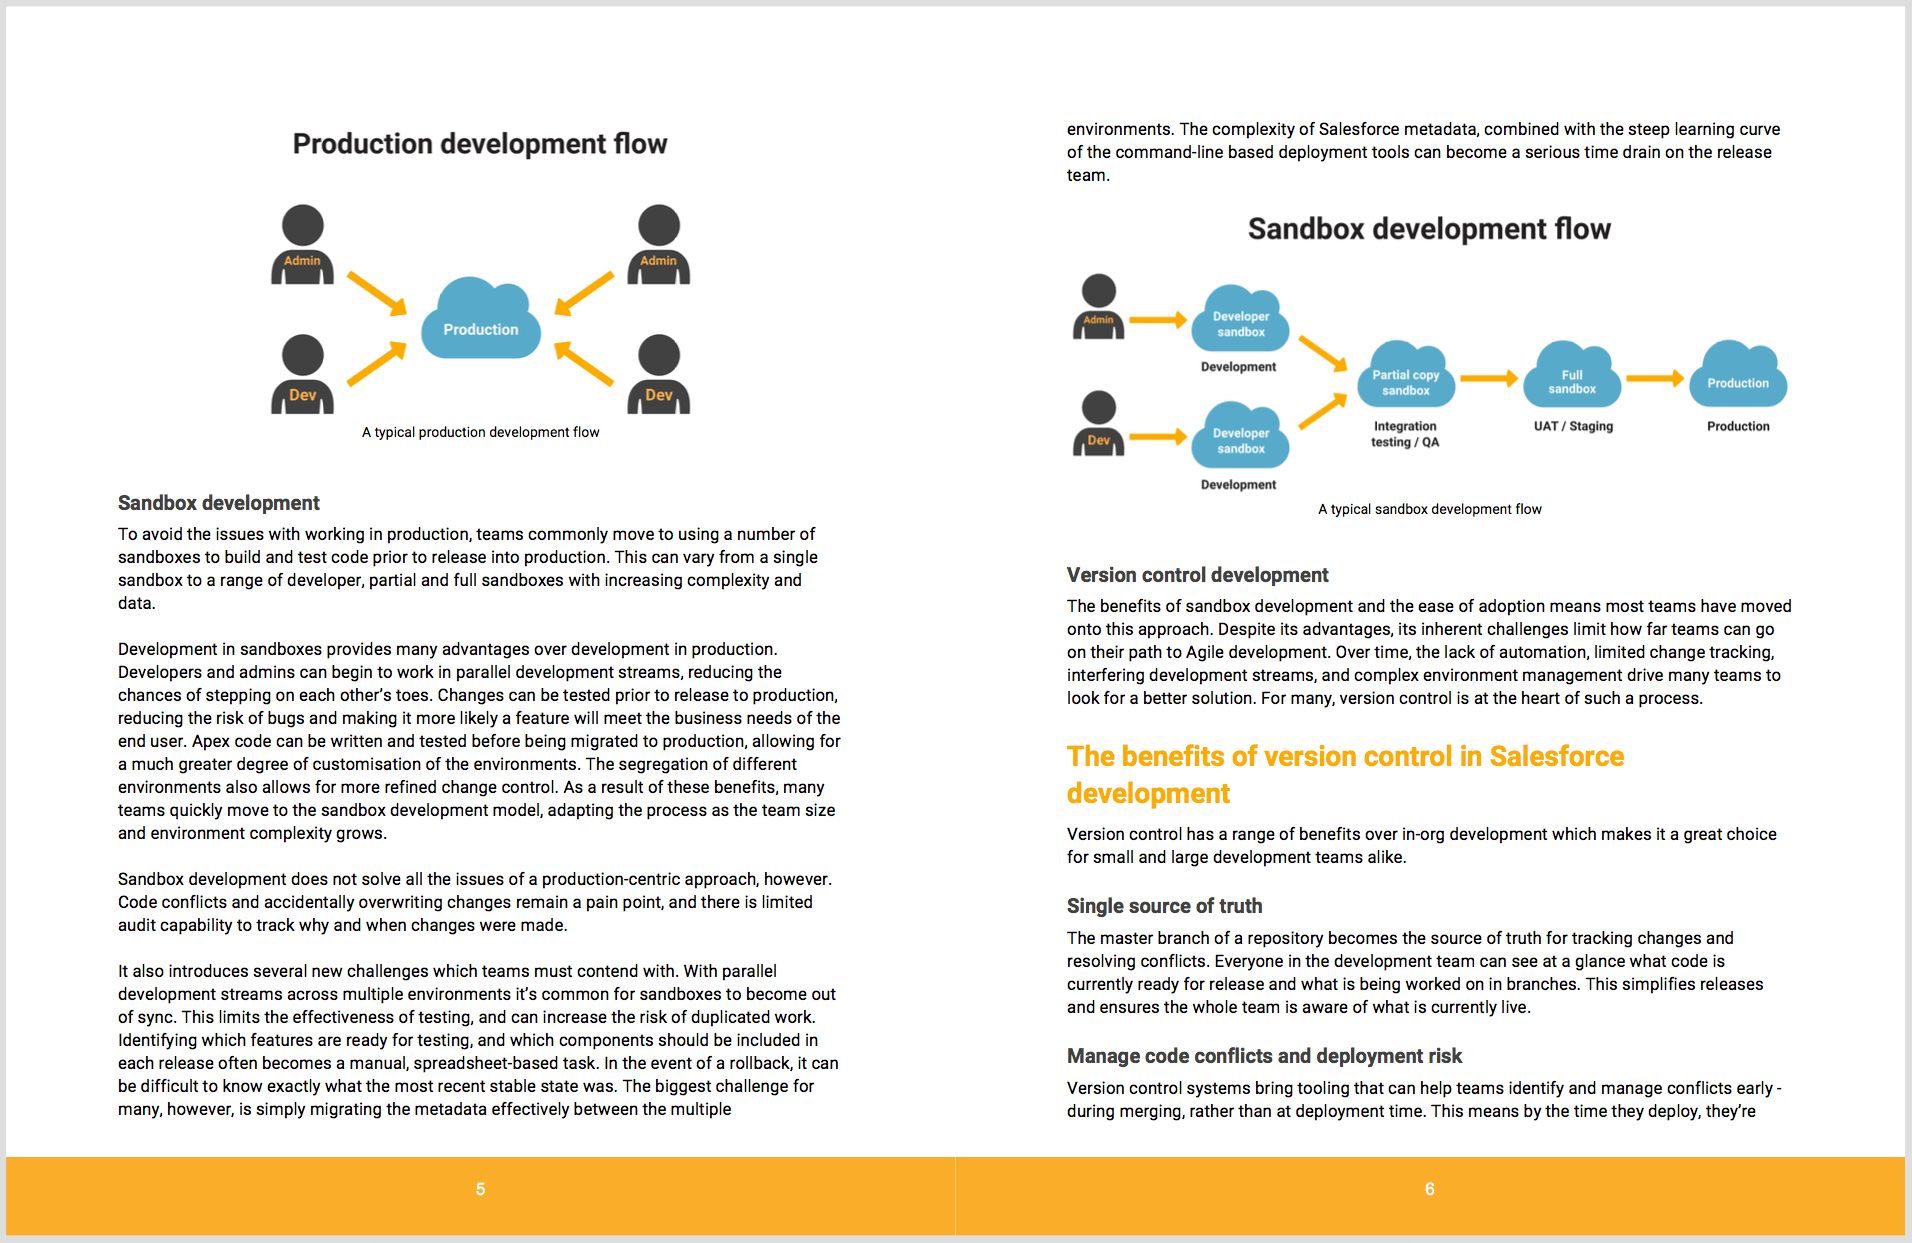 The Gearset whitepaper gives an in-depth model for implementing version control driven development for your business